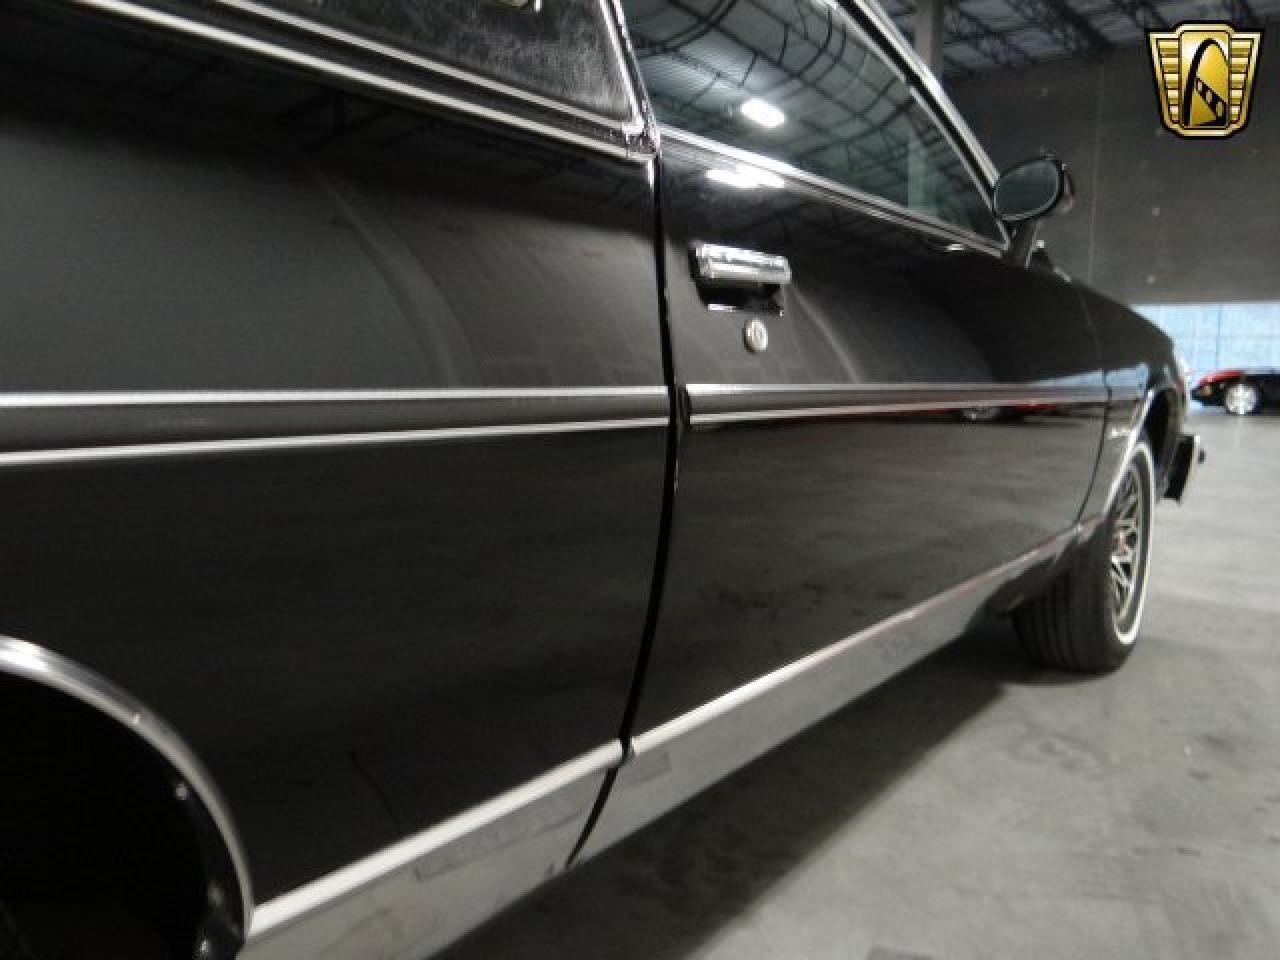 Large Picture of 1979 Pontiac Bonneville located in Georgia - $17,595.00 Offered by Gateway Classic Cars - Atlanta - KOIW